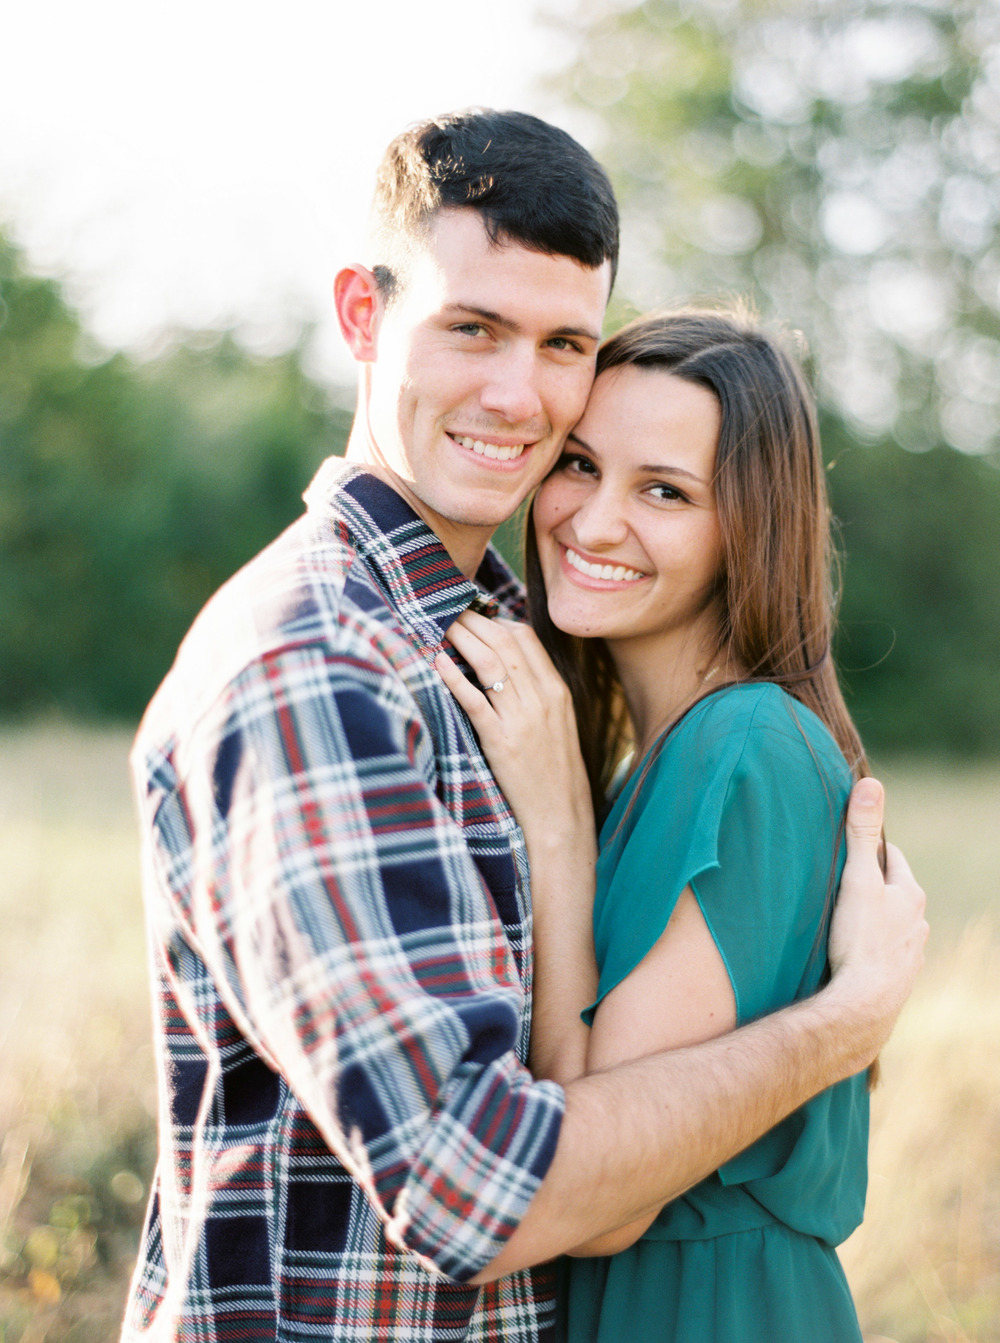 Sarah Best Photography - Brittany & Jonathan's Engagements-234.jpg